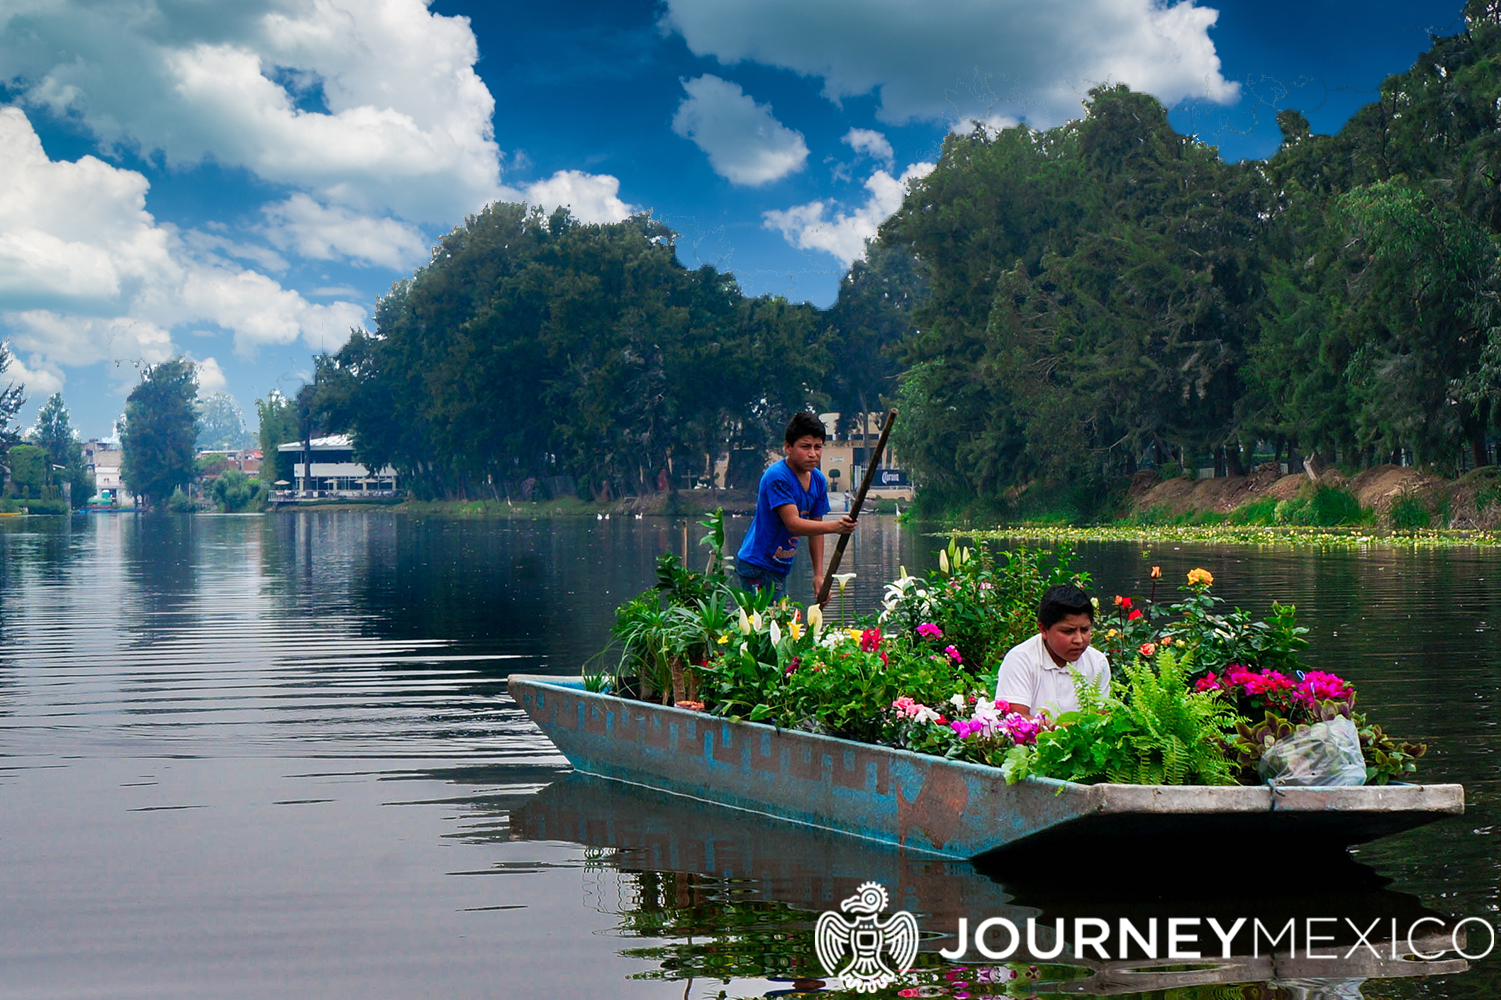 The Floating Gardens Of Xochimilco Journey Mexico